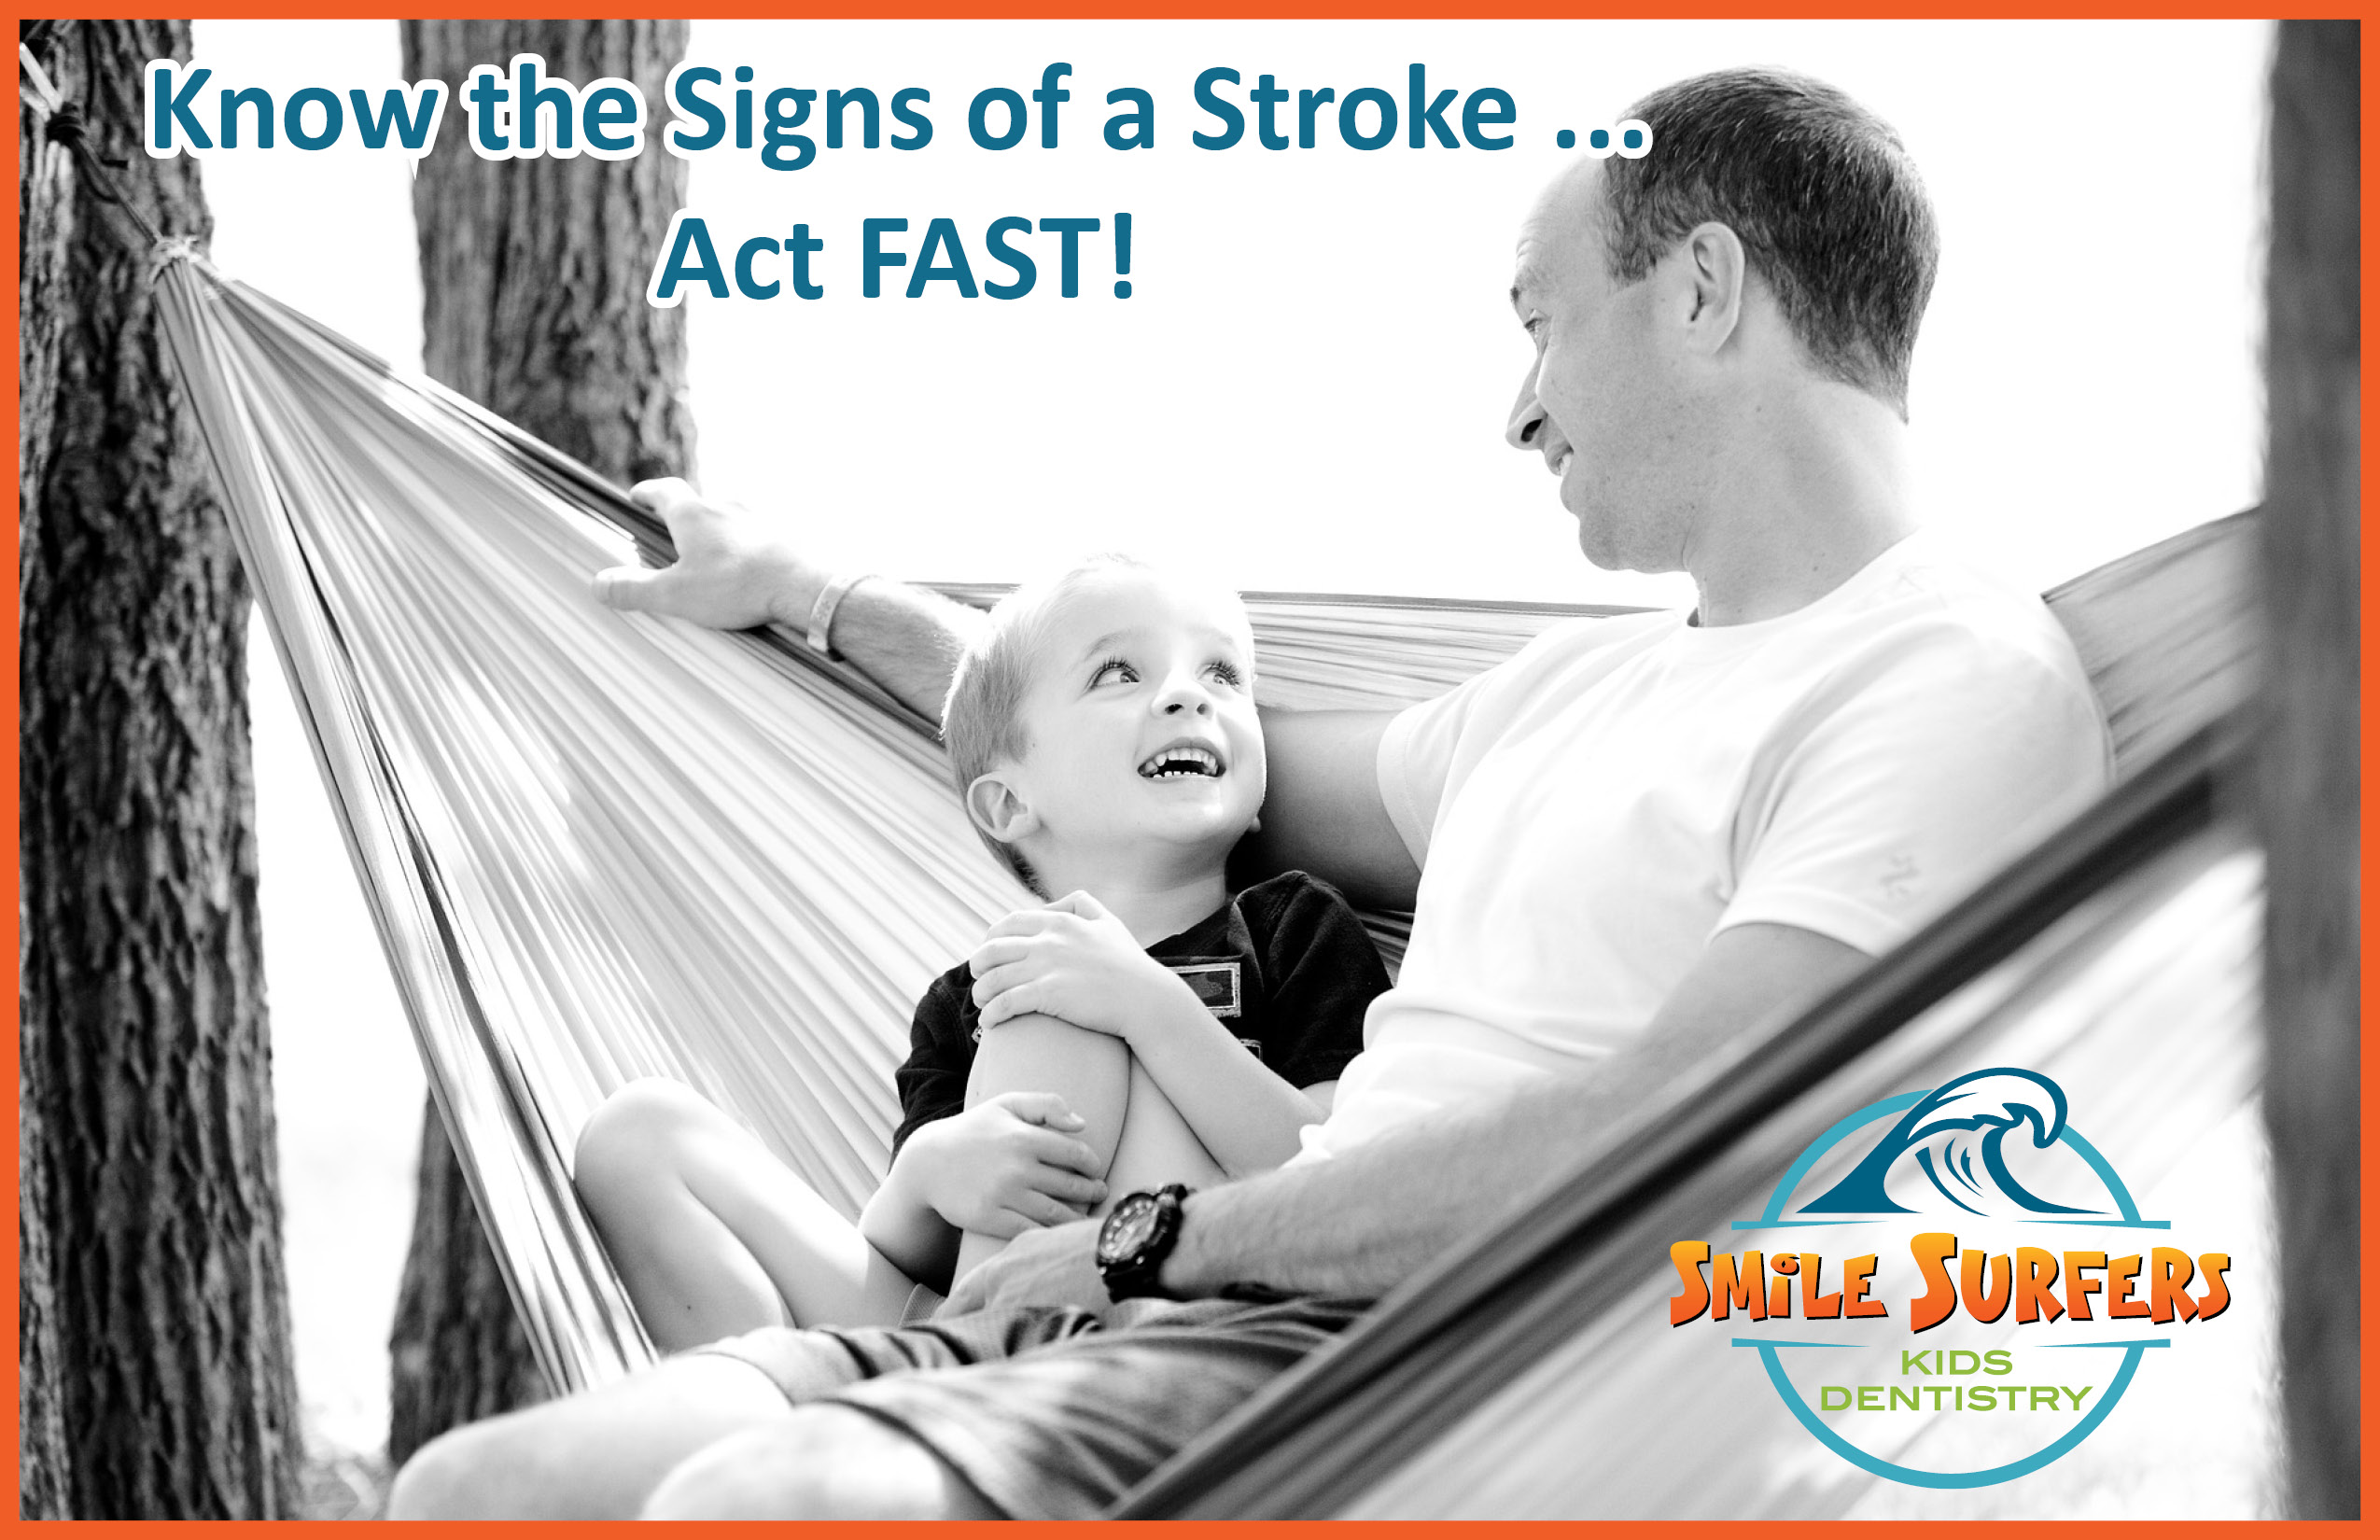 Know the signs of a stroke.